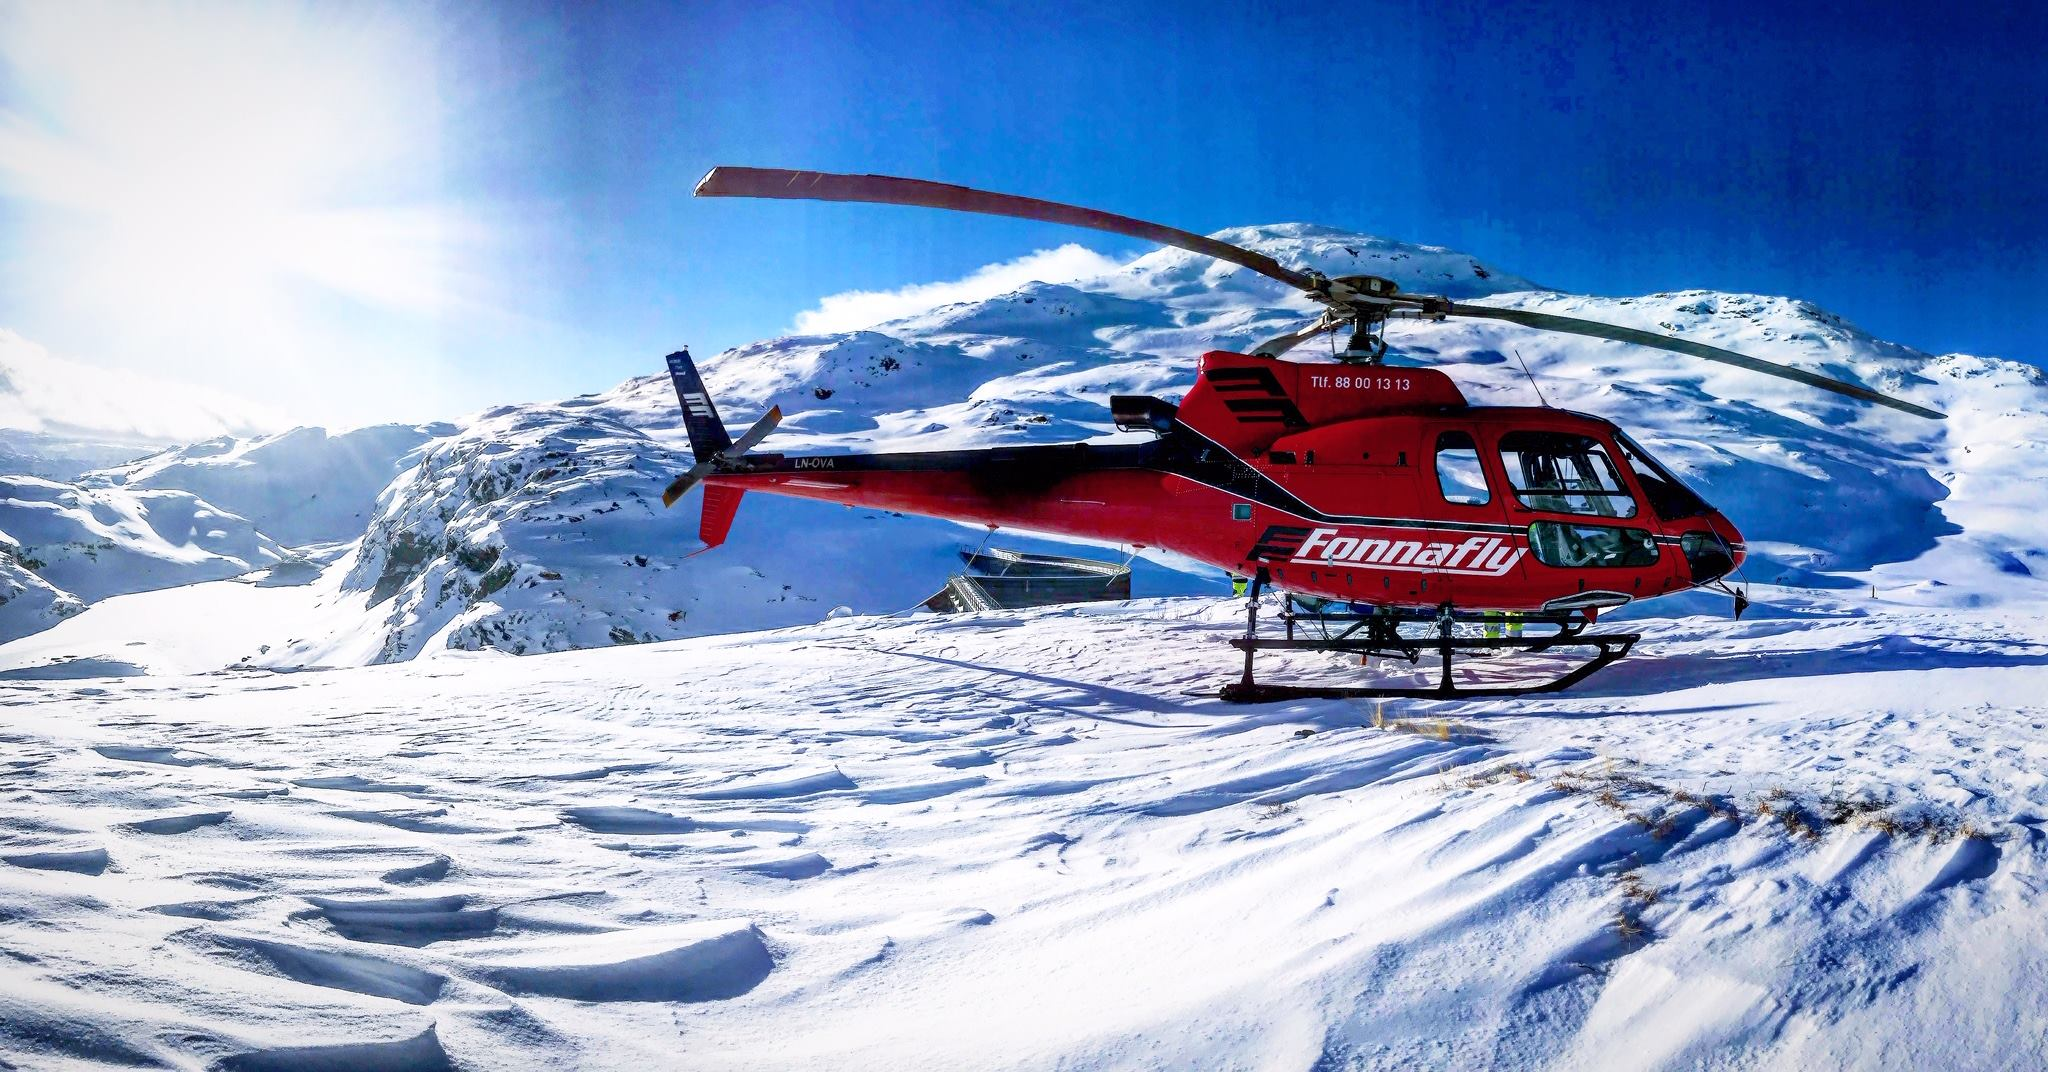 #helicopter #Mountain #Norway